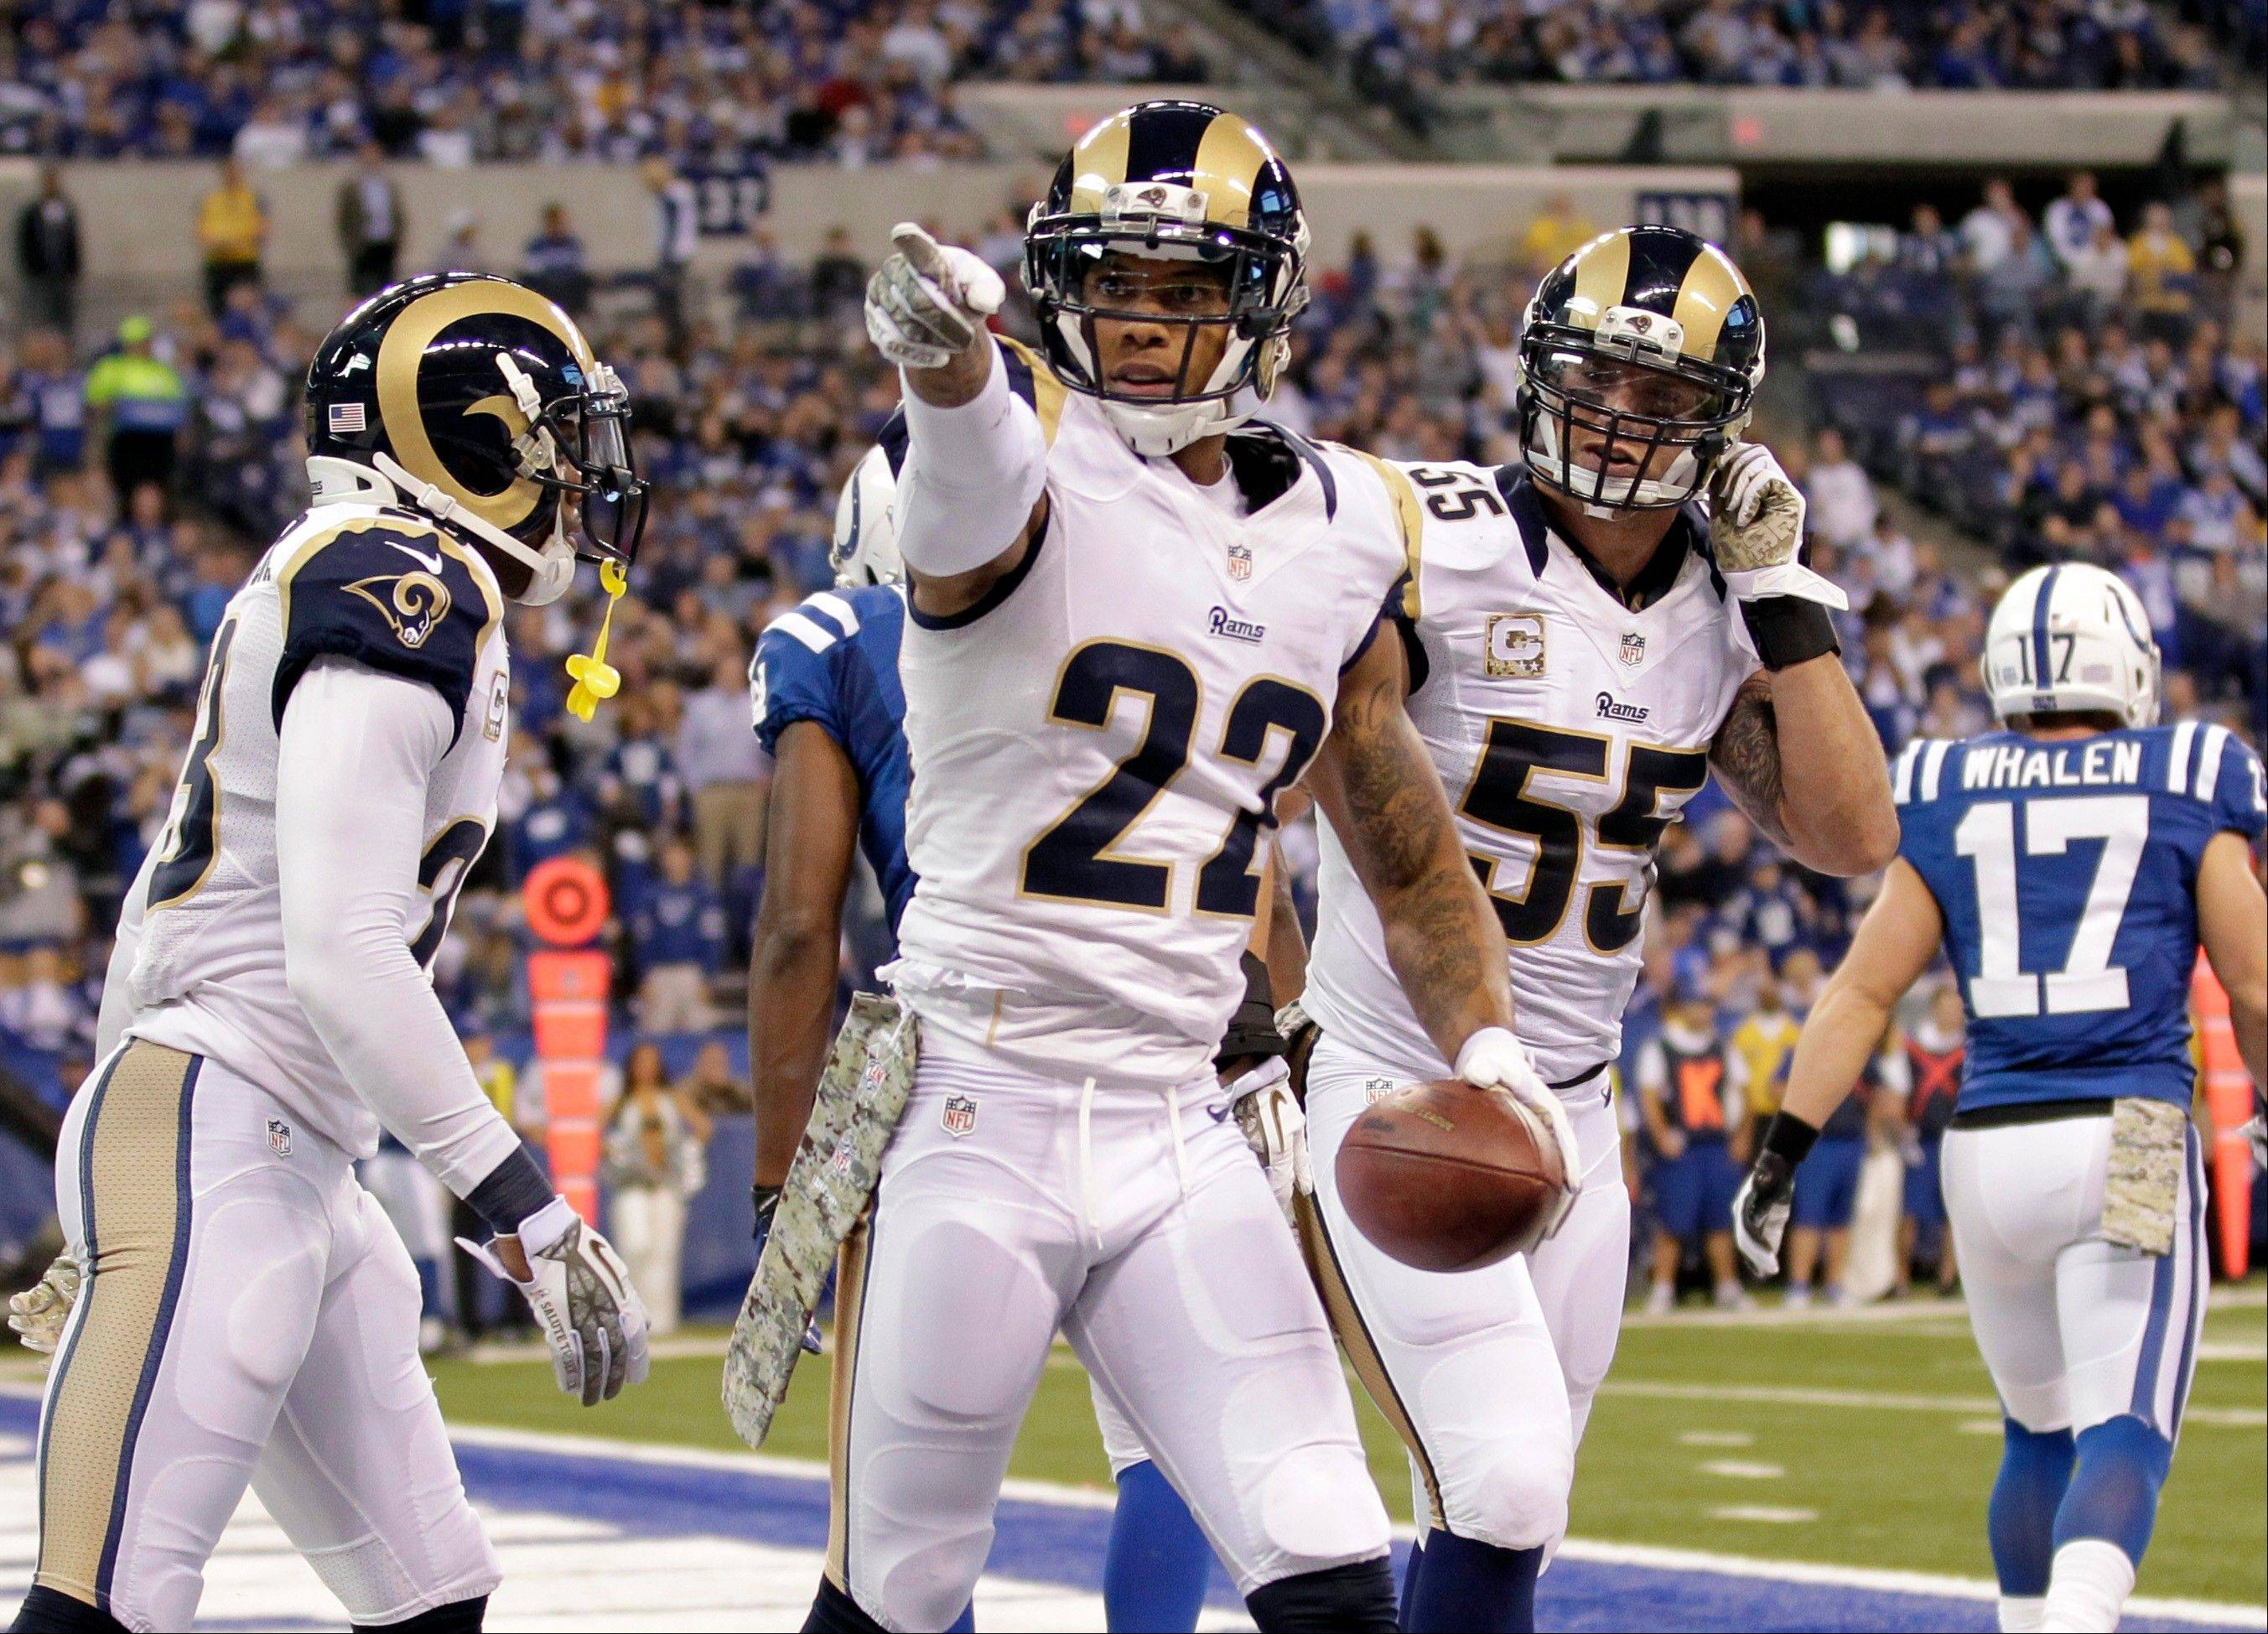 St. Louis Rams cornerback Trumaine Johnson, center, celebrates an interception with teammates James Laurinaitis (55) and free safety Rodney McLeod during the second half of an NFL football game against the Indianapolis Colts in Indianapolis, Sunday, Nov. 10, 2013.